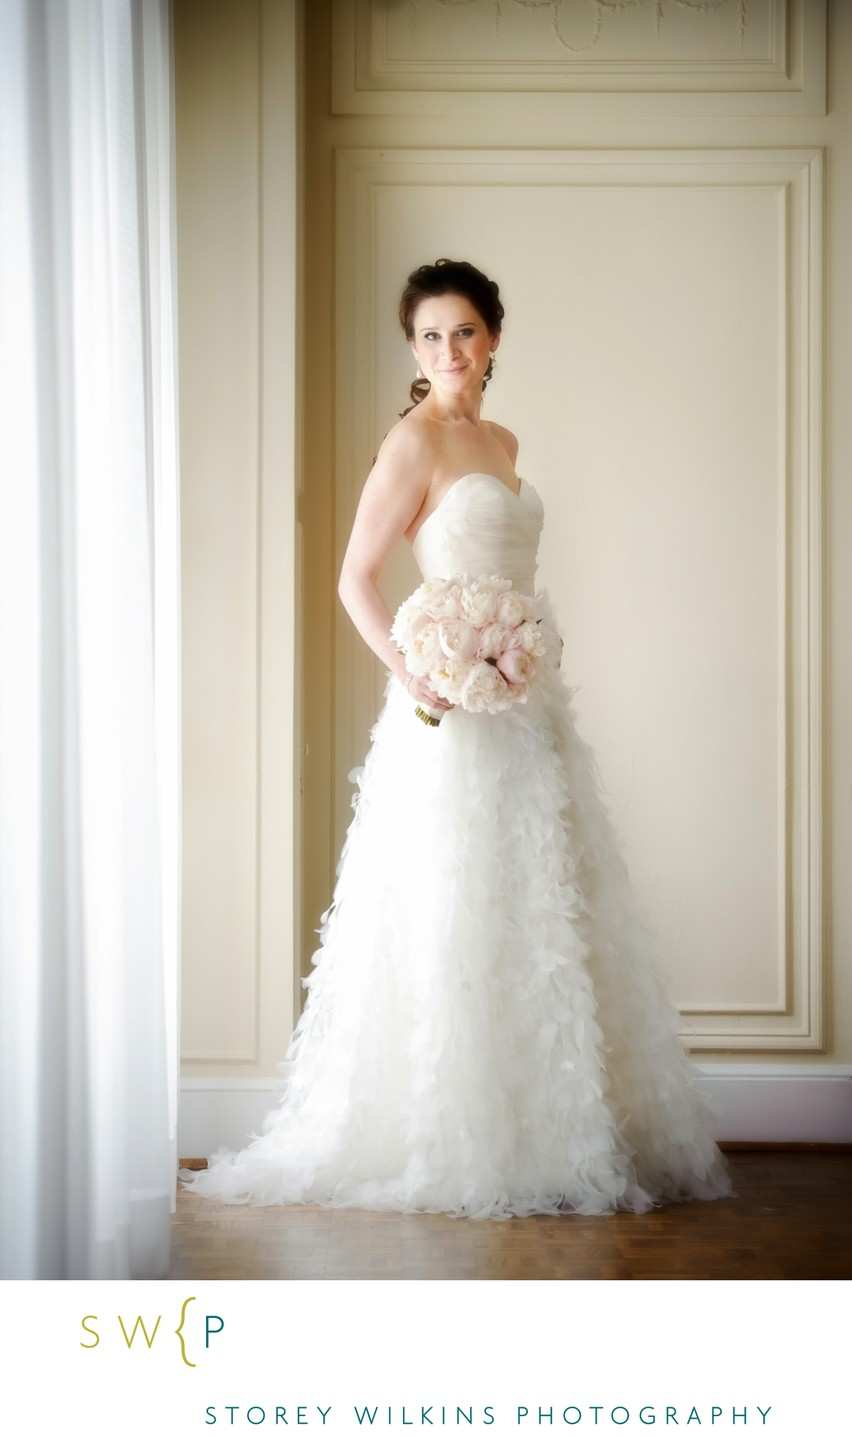 Bridal Portrait by Skilled Toronto Wedding Photographer